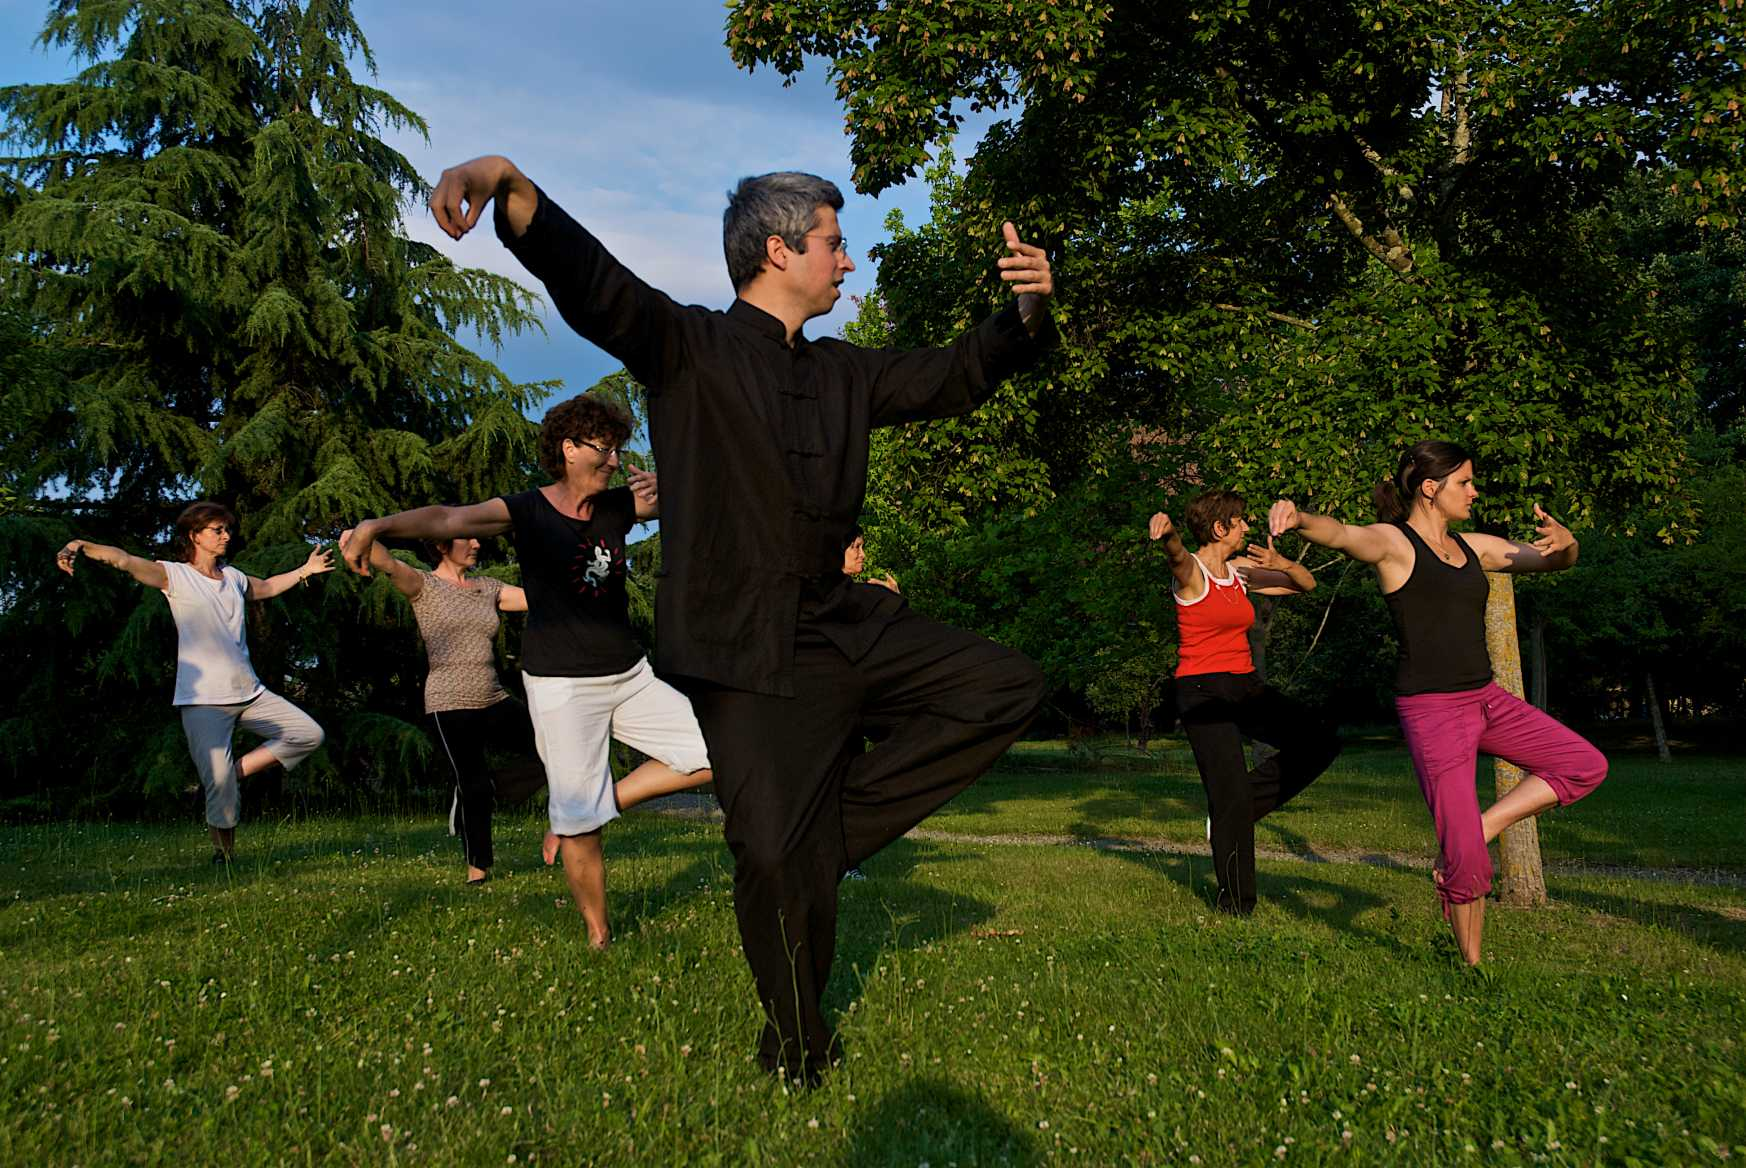 le simple fouet en tai chi